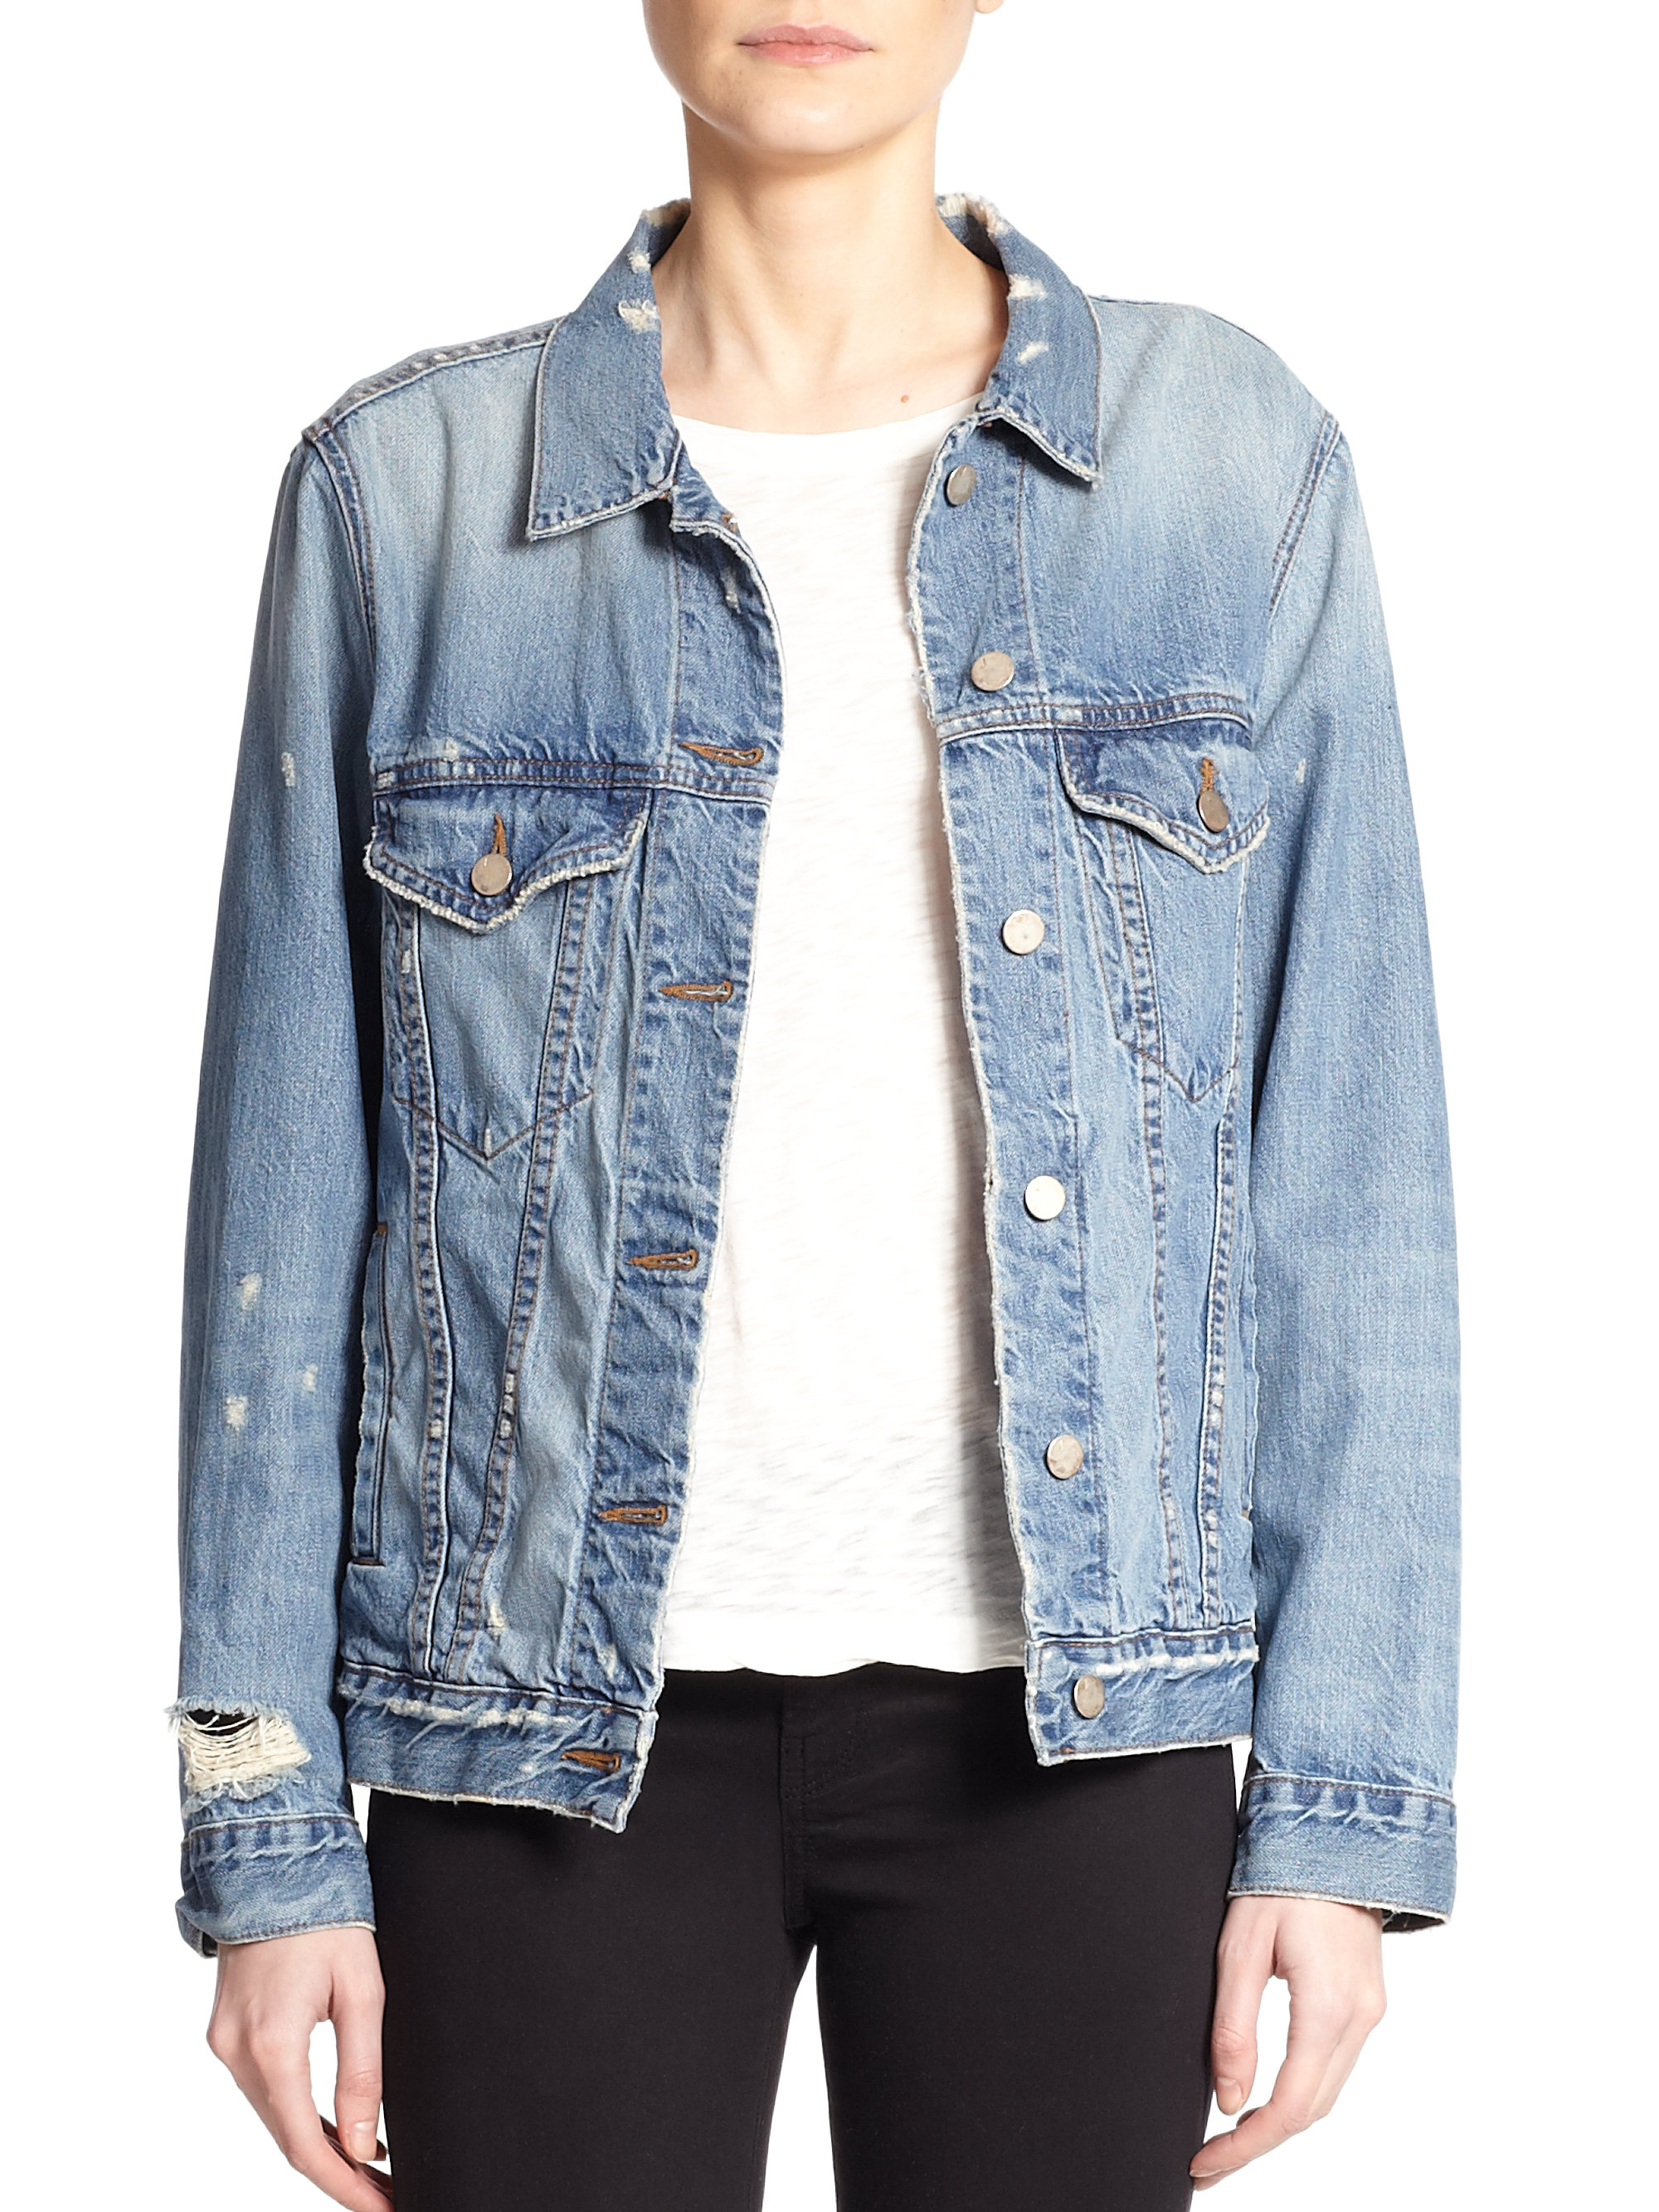 The Rough 'N Tumble Jacket comes in light wash denim and features a relaxed silhouette, snap closures and four pockets at front, and distressed detailing. Details and Care Fabric: % Cotton, Exclusive Of Trims.